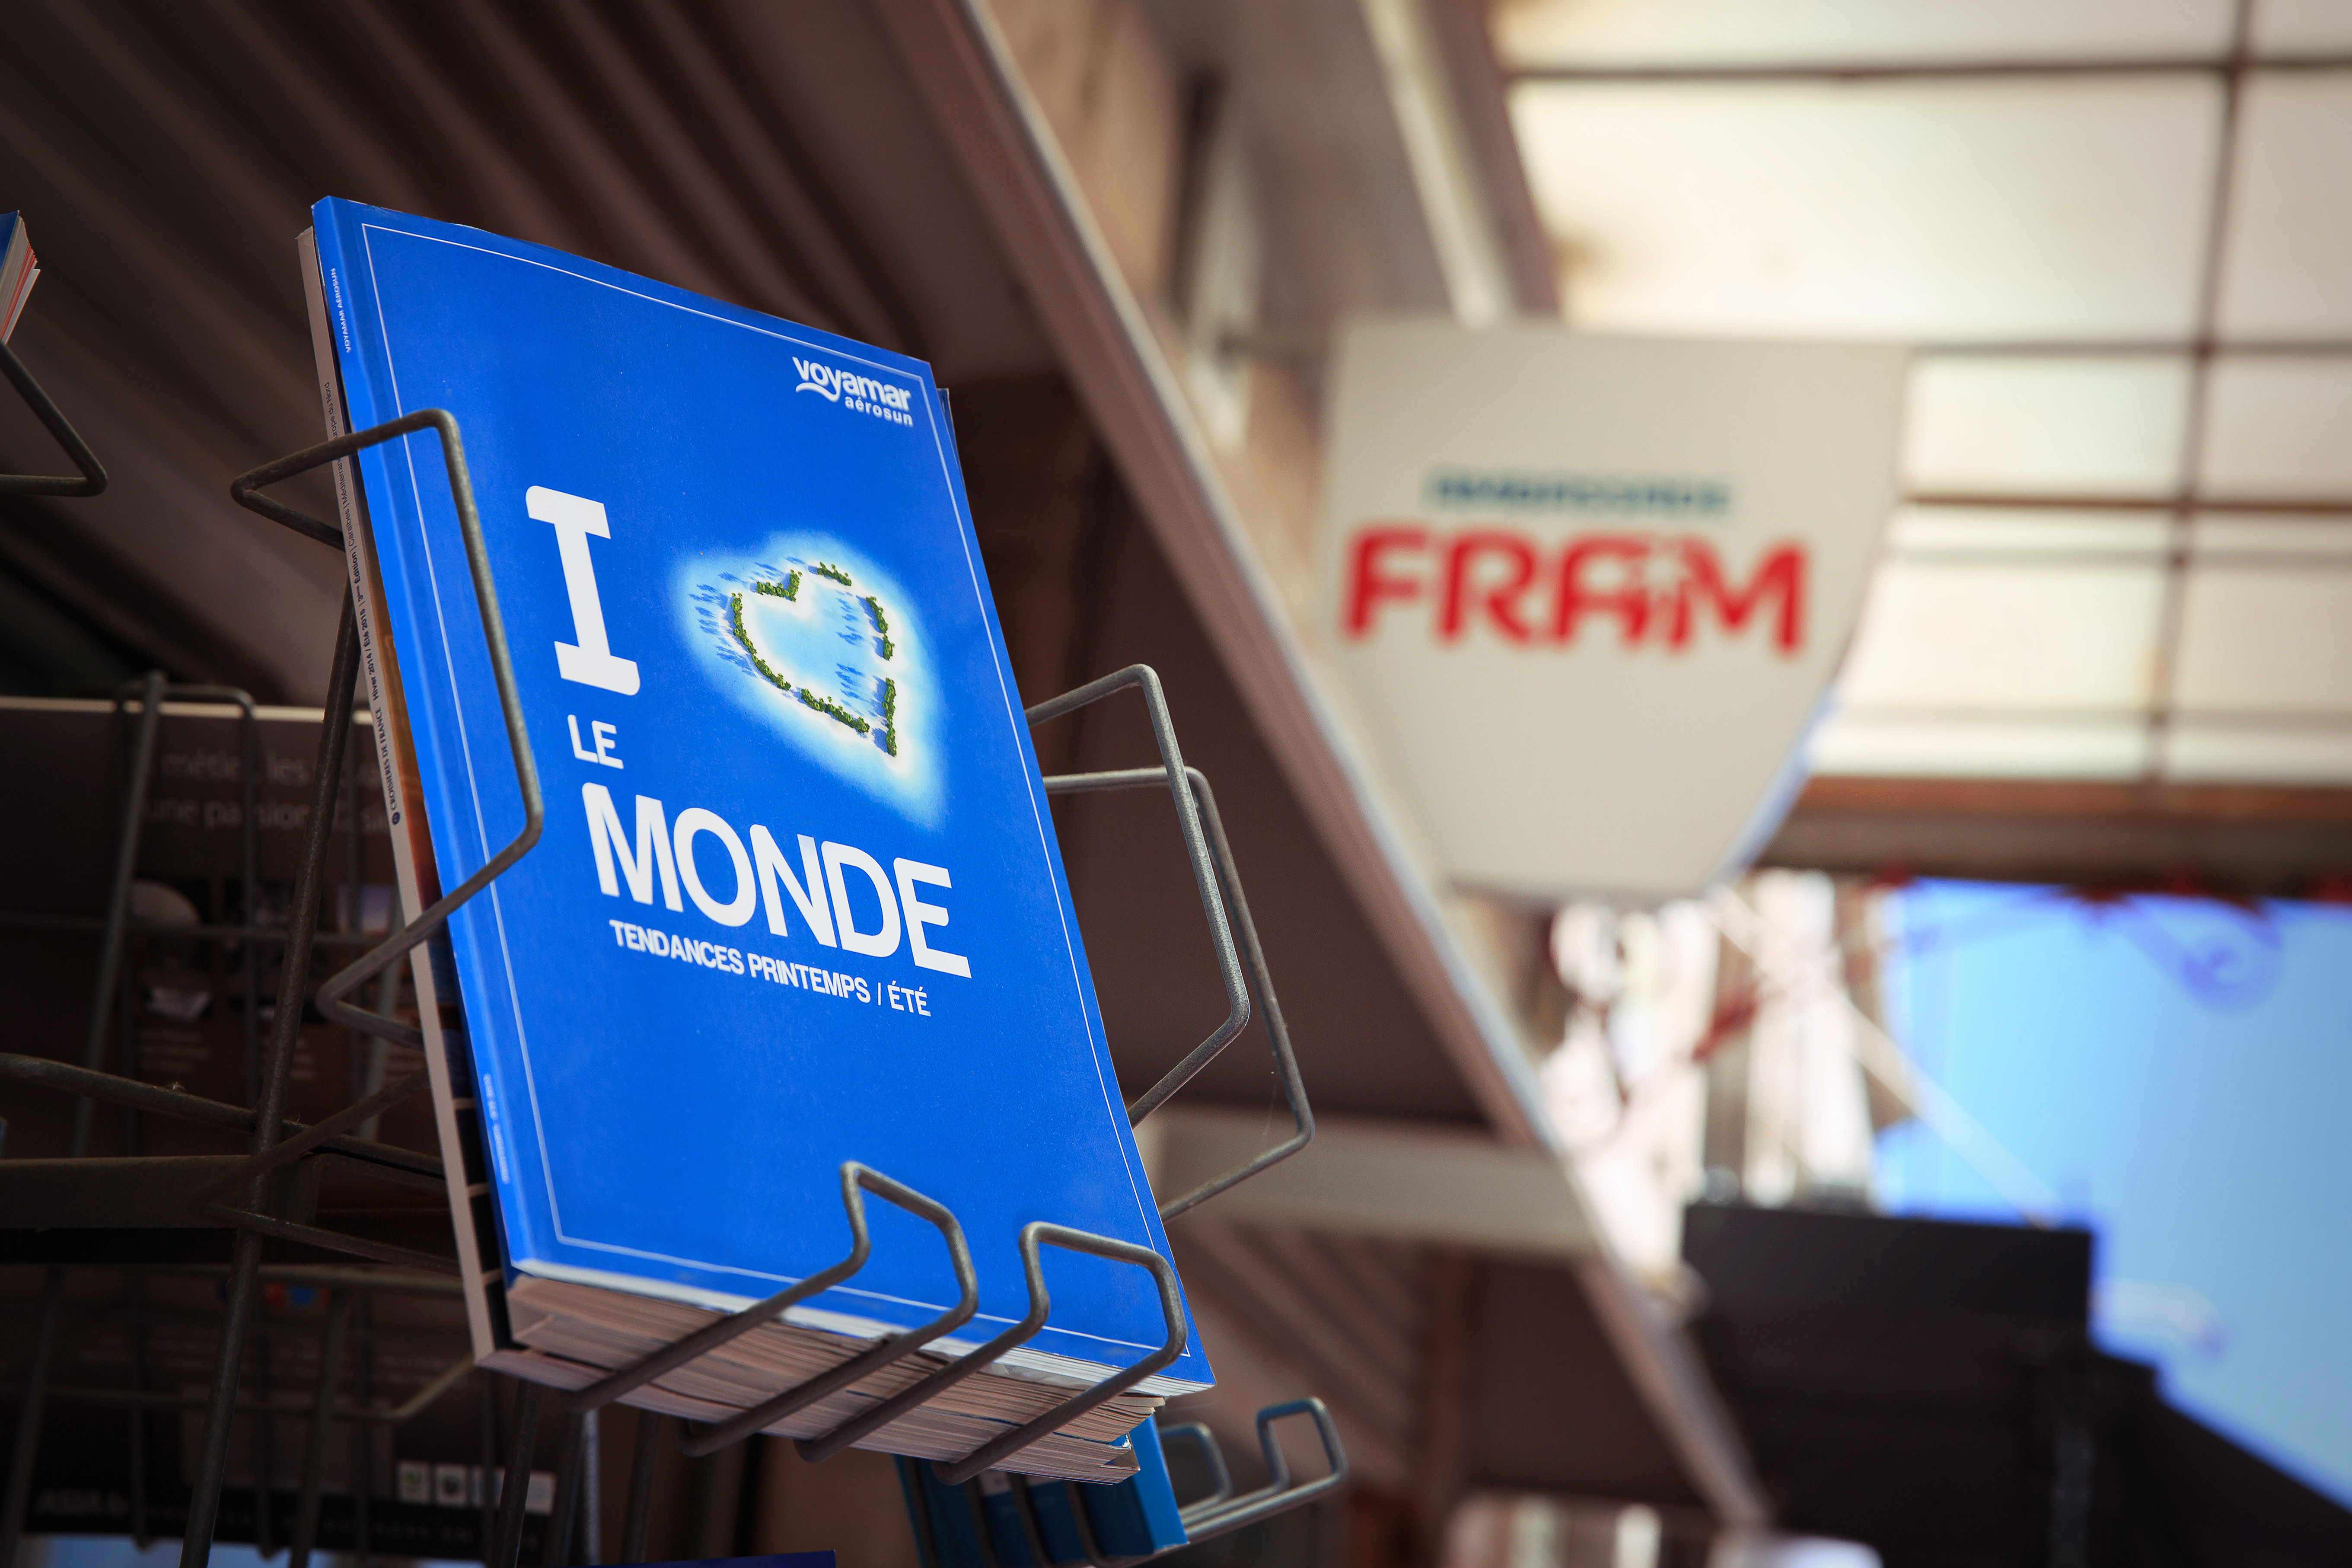 agence romand voyages macon